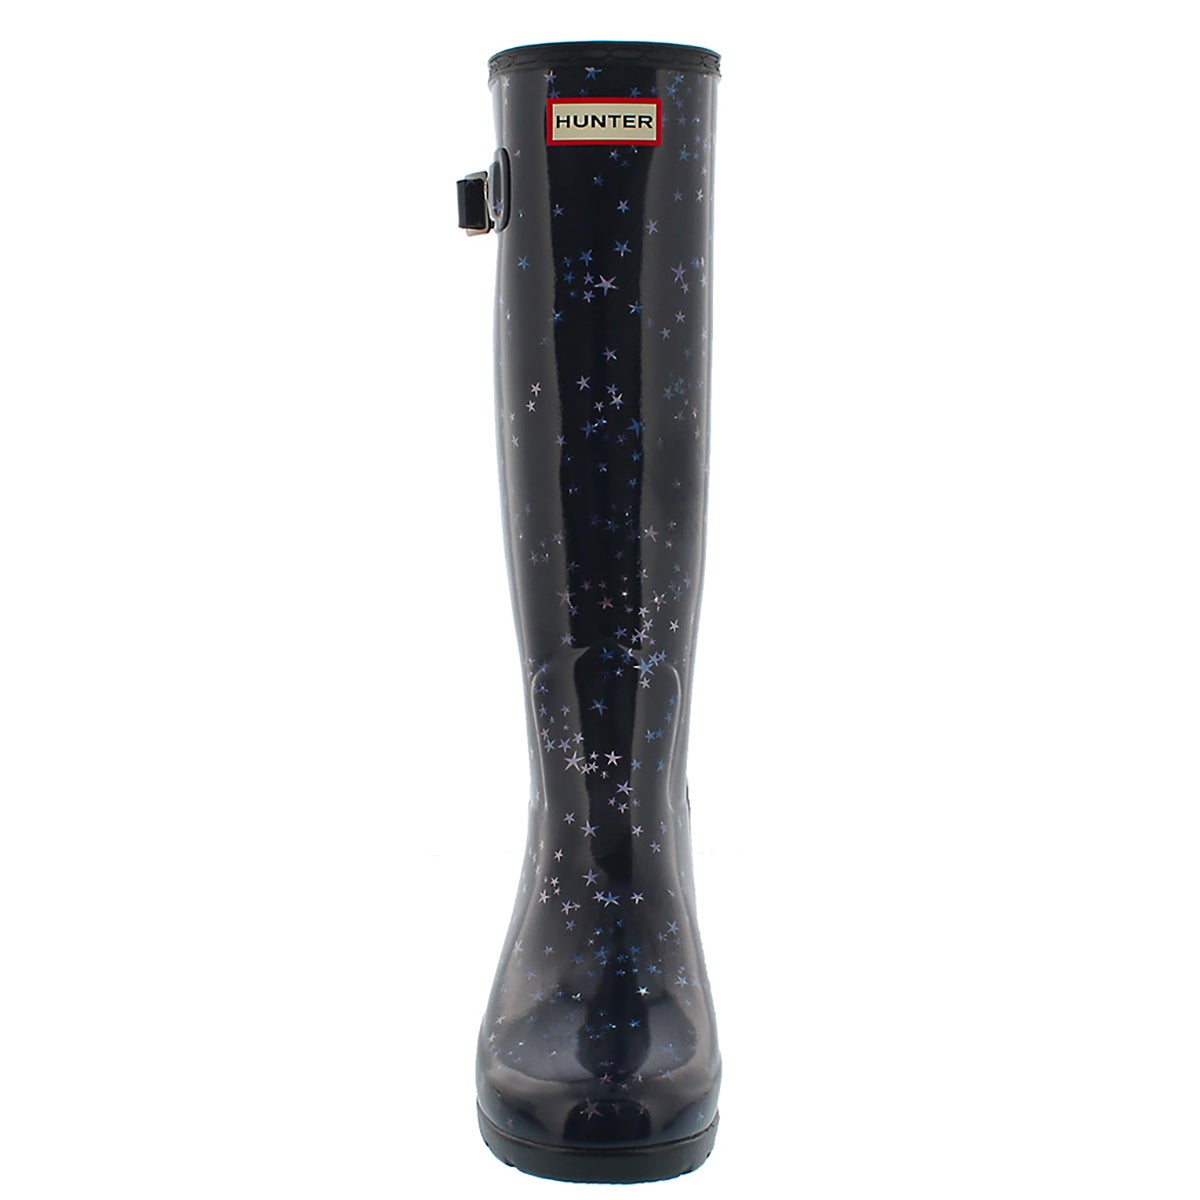 Lds RefinedTallConstelation mdn rainboot